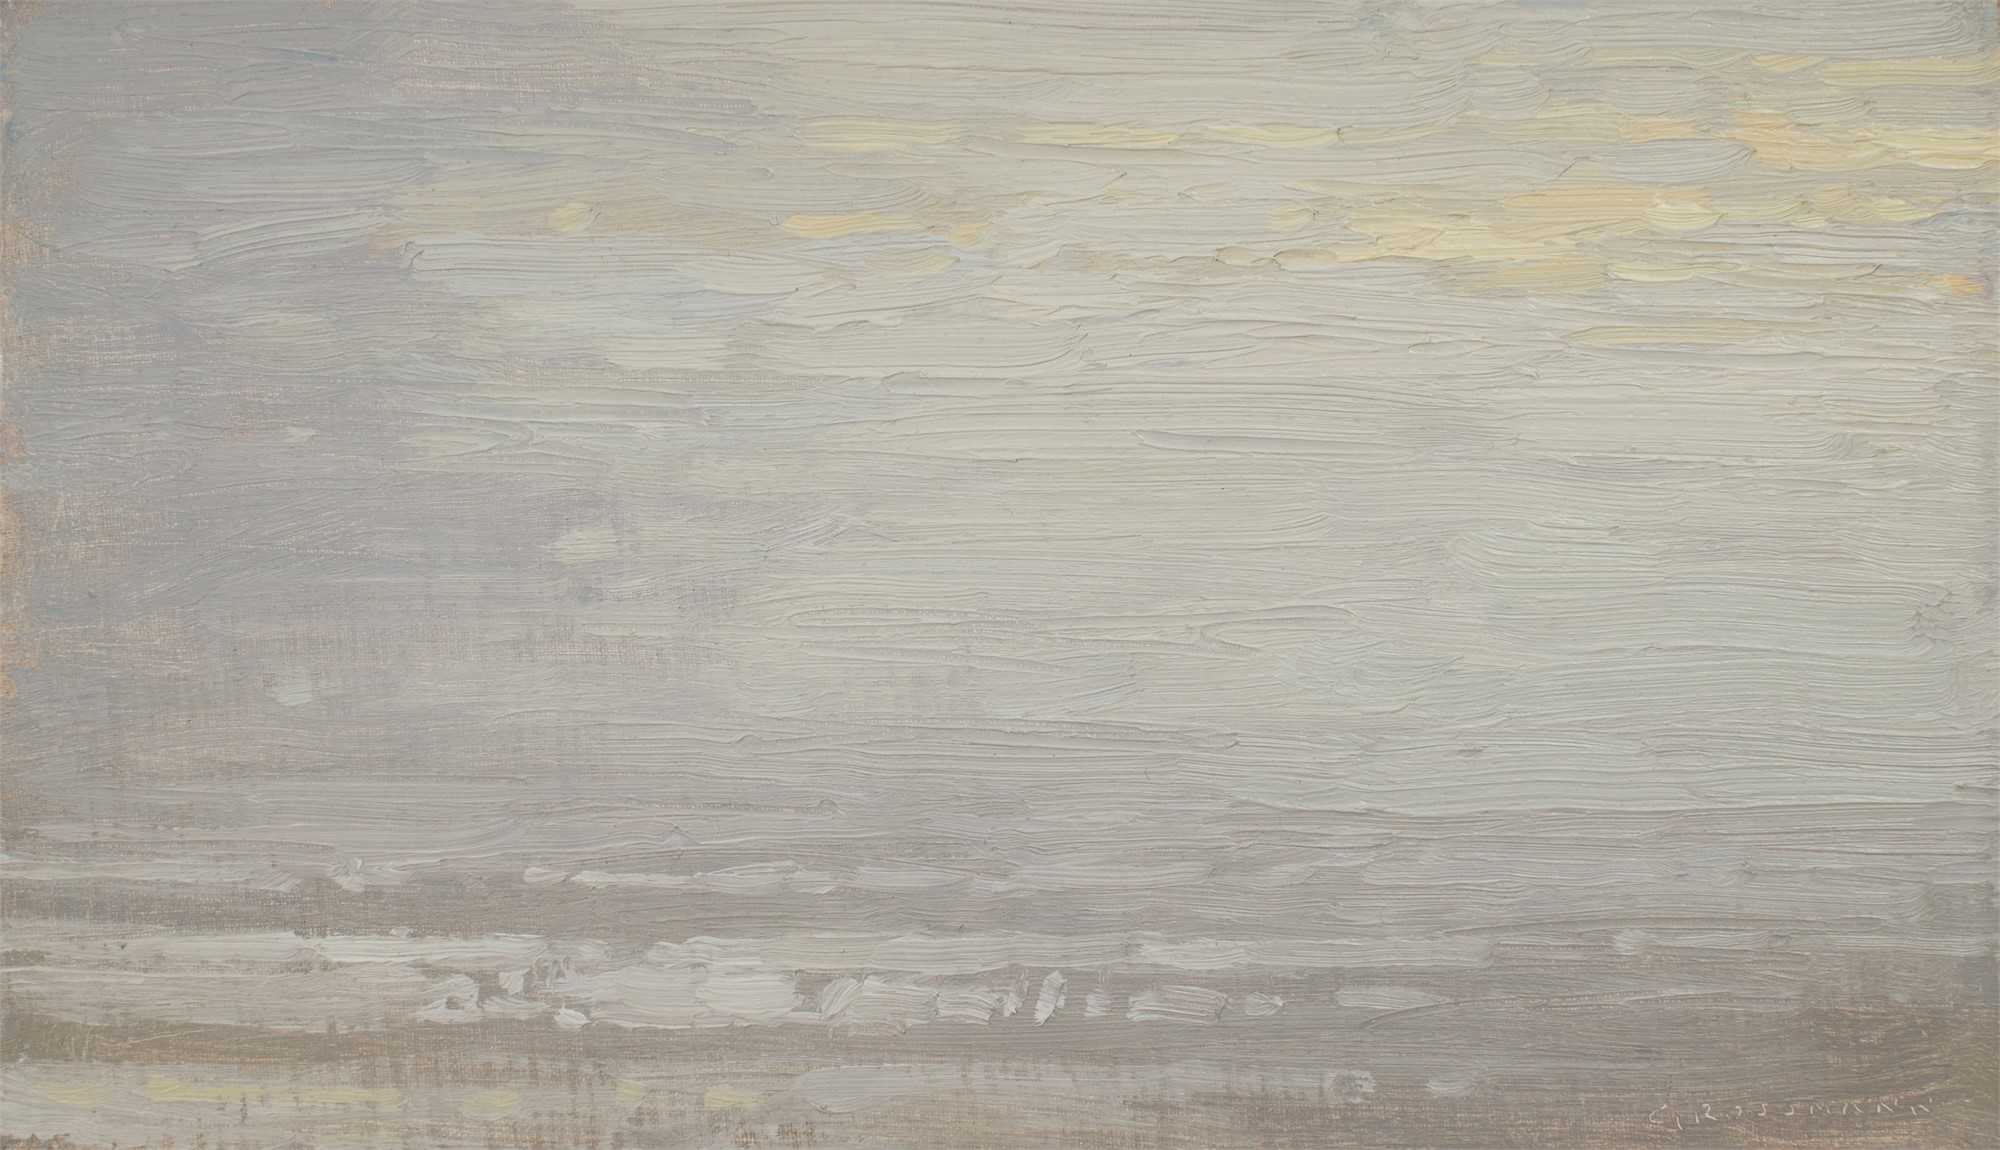 Early Morning Winter View by David Grossmann